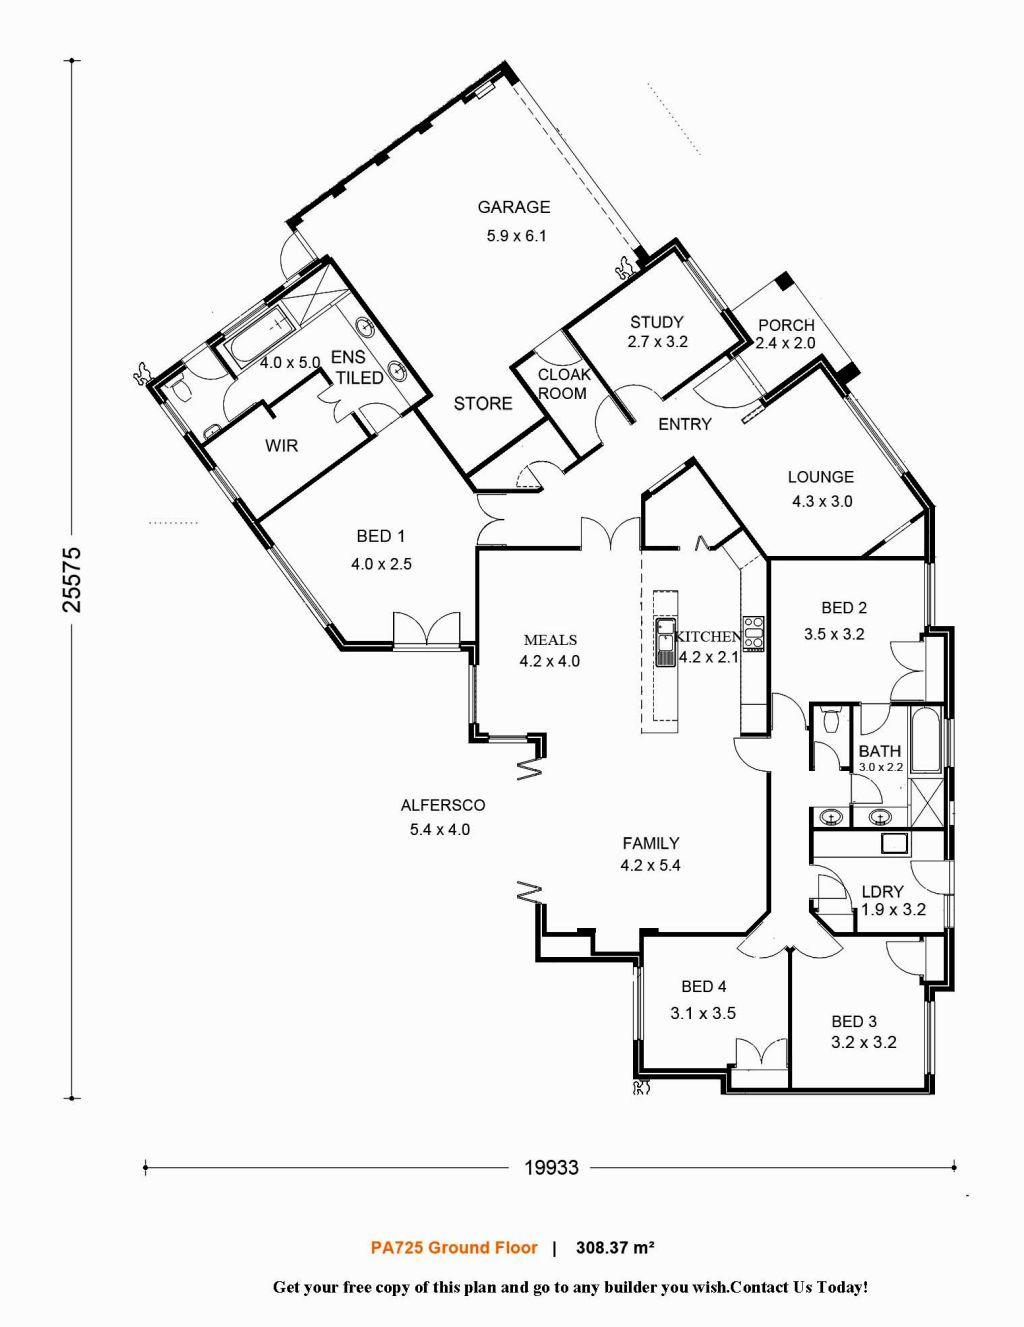 single level home design i like the overall design of this floor plan i dont like that the study is one of the first rooms you come to upon entering the - One Level Home Designs